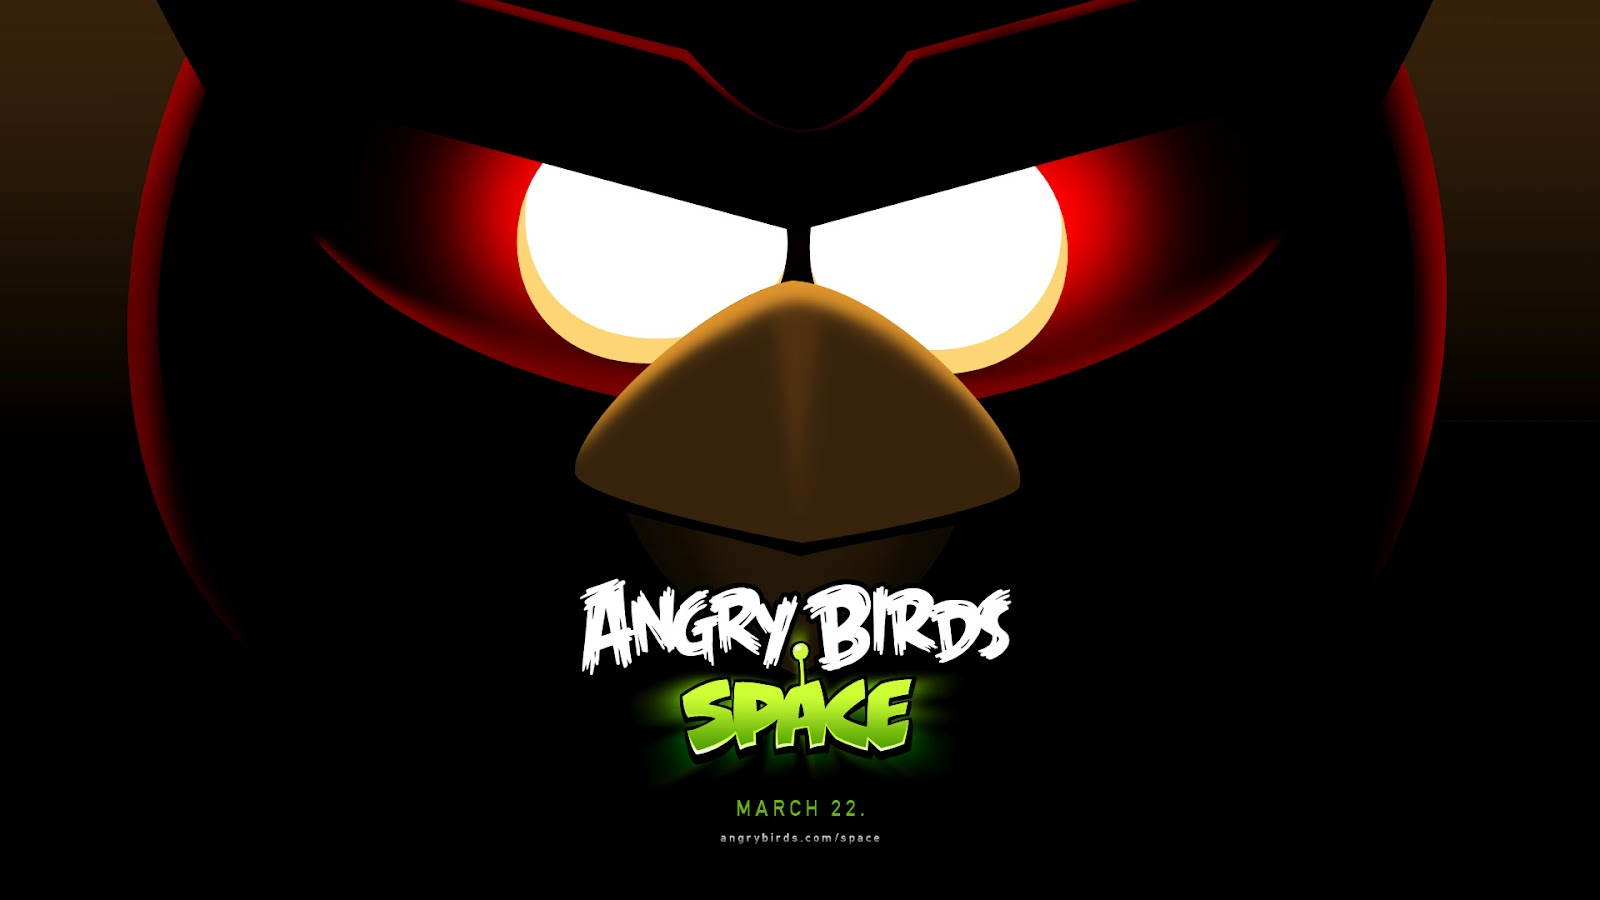 Angry birds space wallpapers the geek solutions a fun filled some of the cool wallpapers for your desktop voltagebd Images